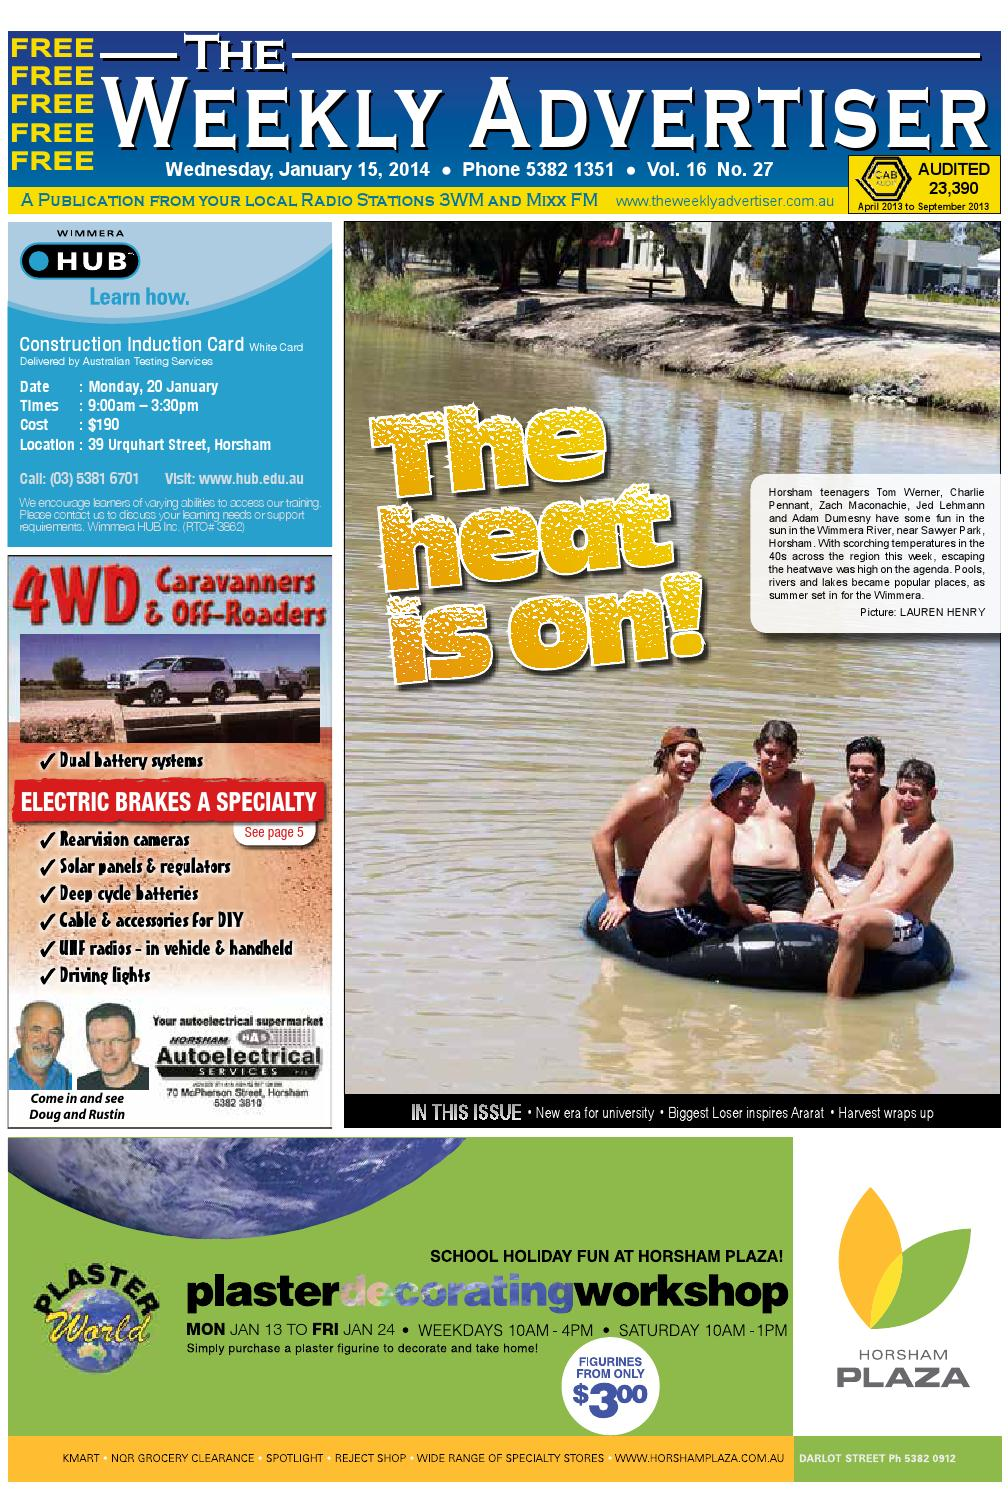 hot sale online ae367 40134 The Weekly Advertiser - Wednesday, January 15, 2014